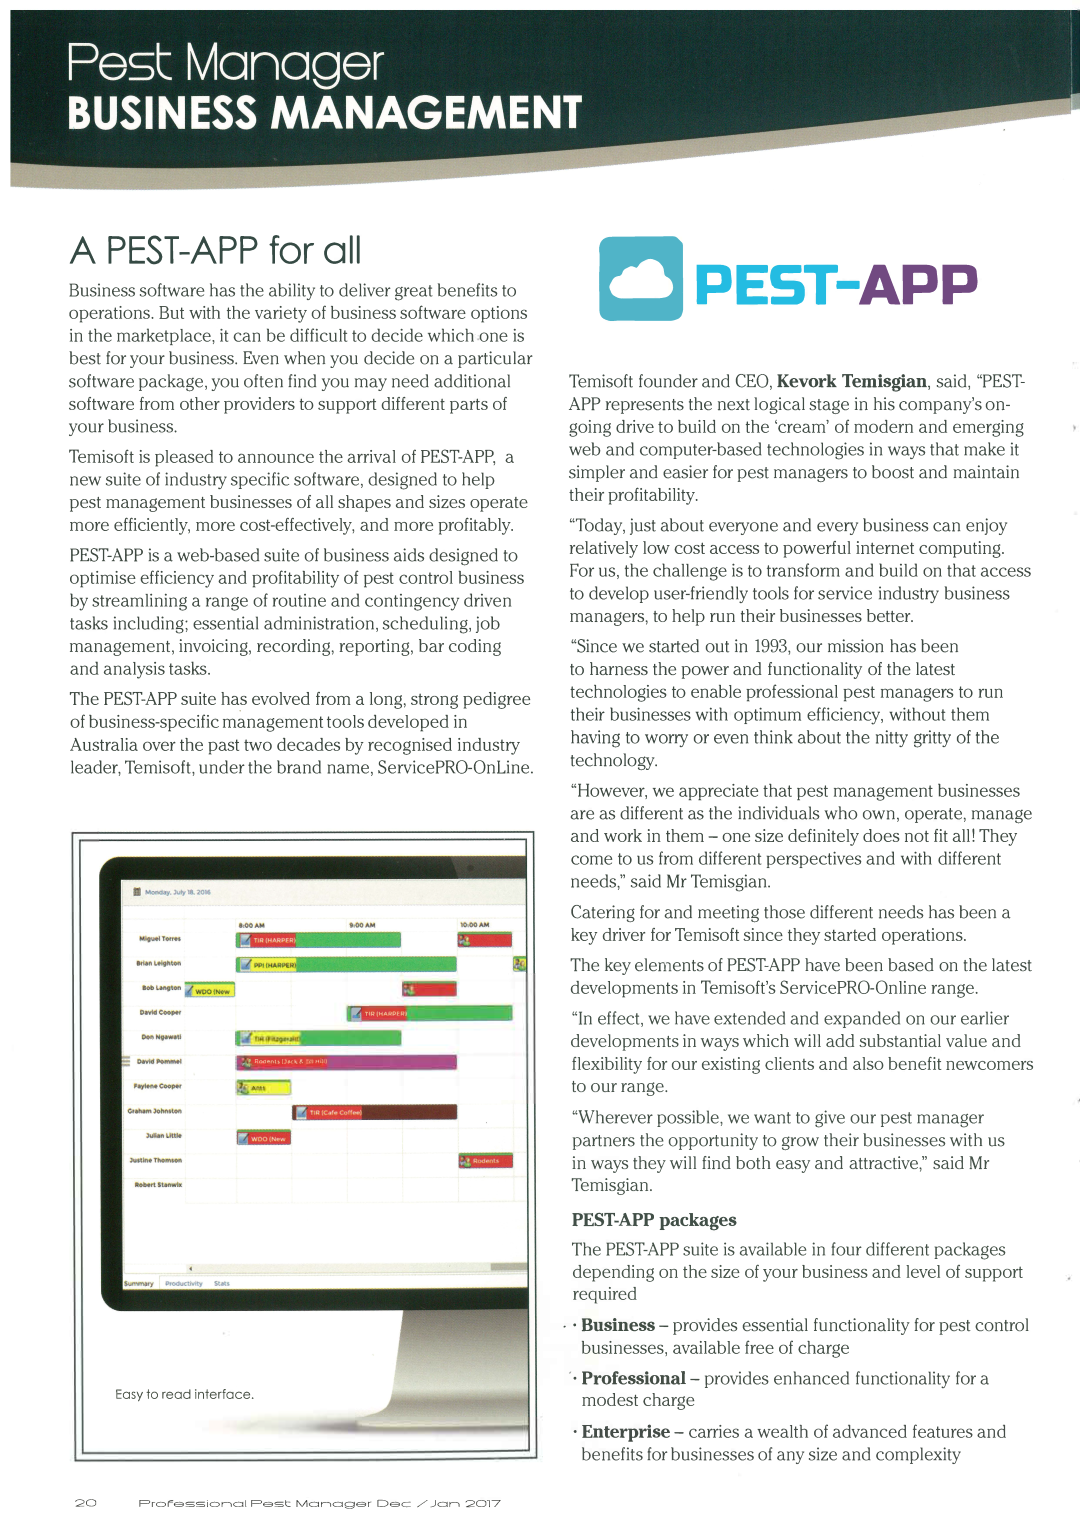 A Pest-App For all - Professional Pest Manager Article